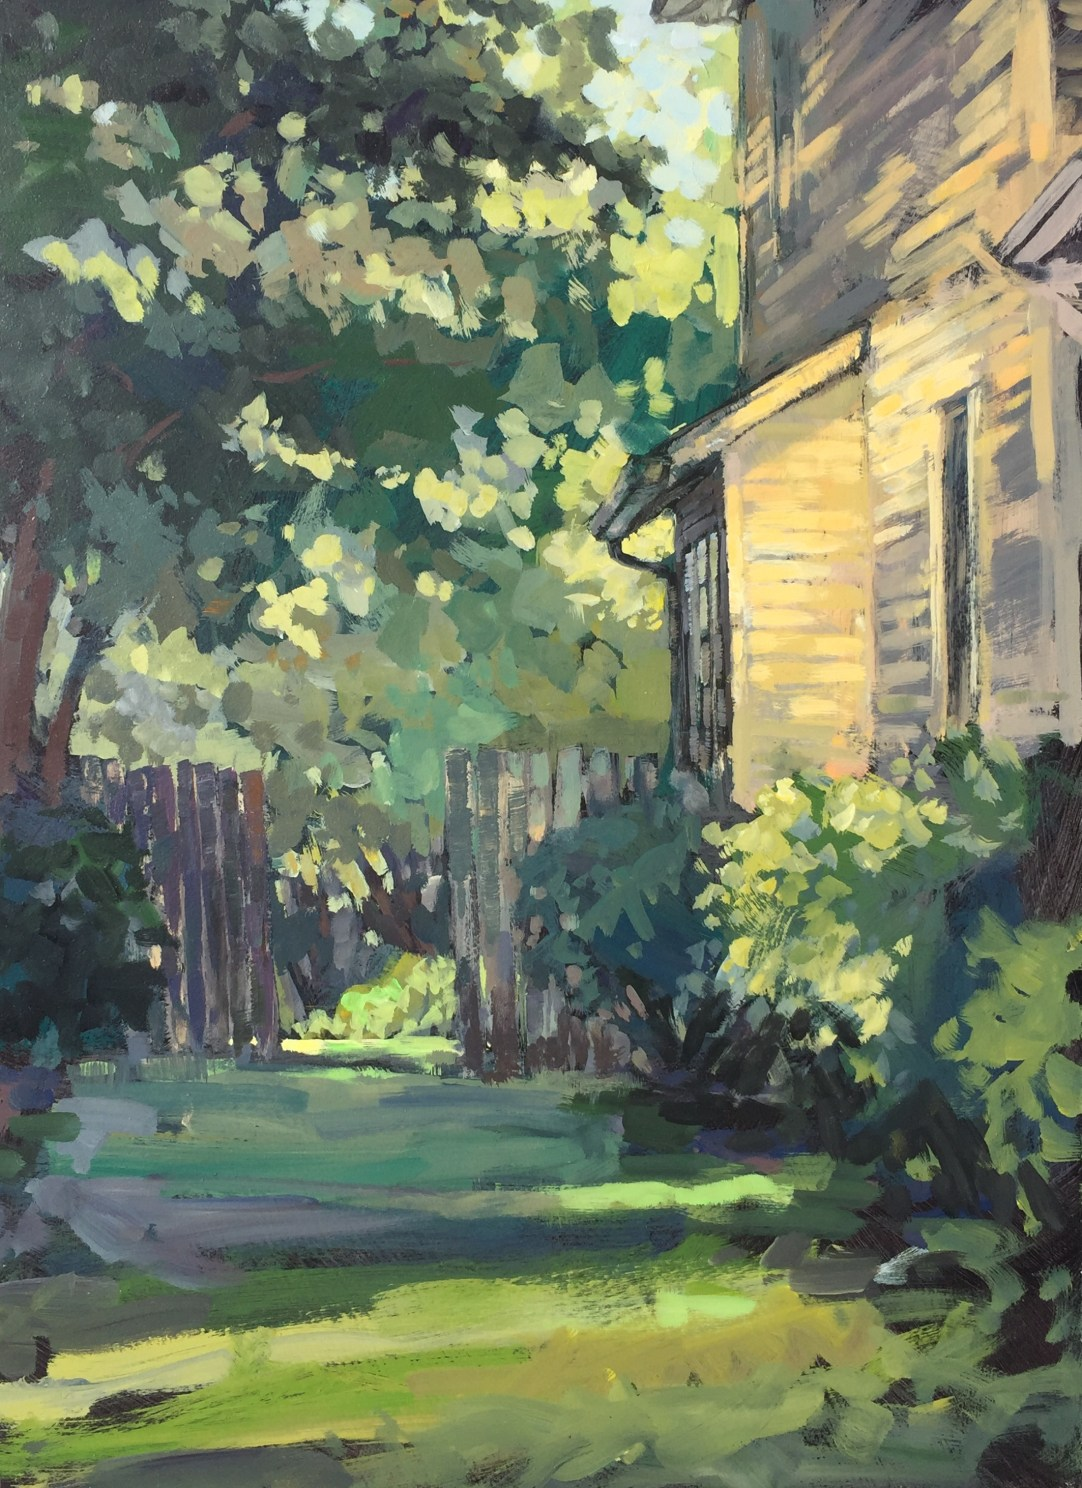 01 - Dappled Light, Old House - 24x18